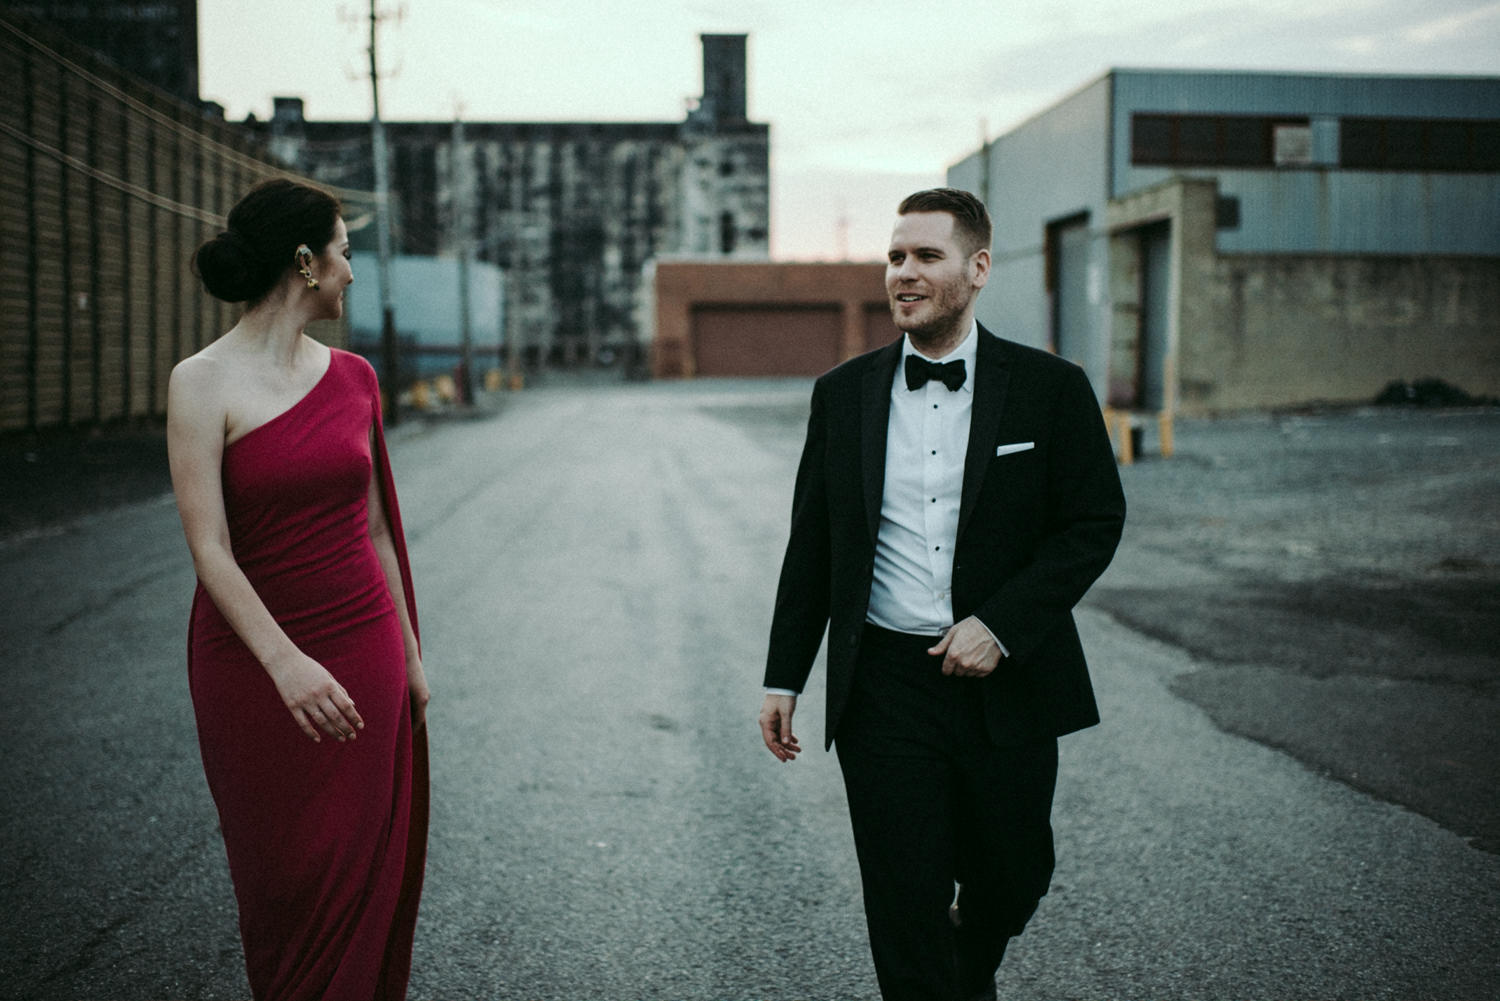 new-york-elopement-engagement-pictures-giancarlo-photography-125.jpg